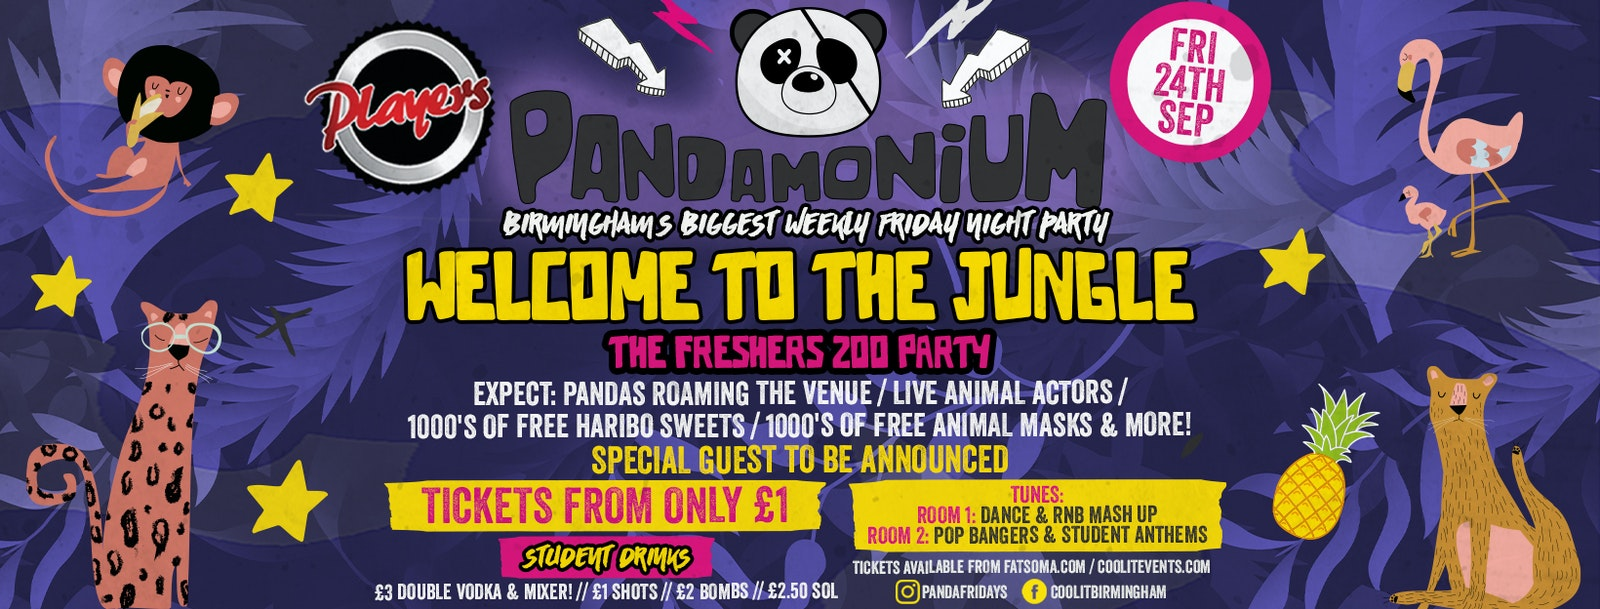 Pandamonium Freshers Special : Welcome To The Jungle Part 2